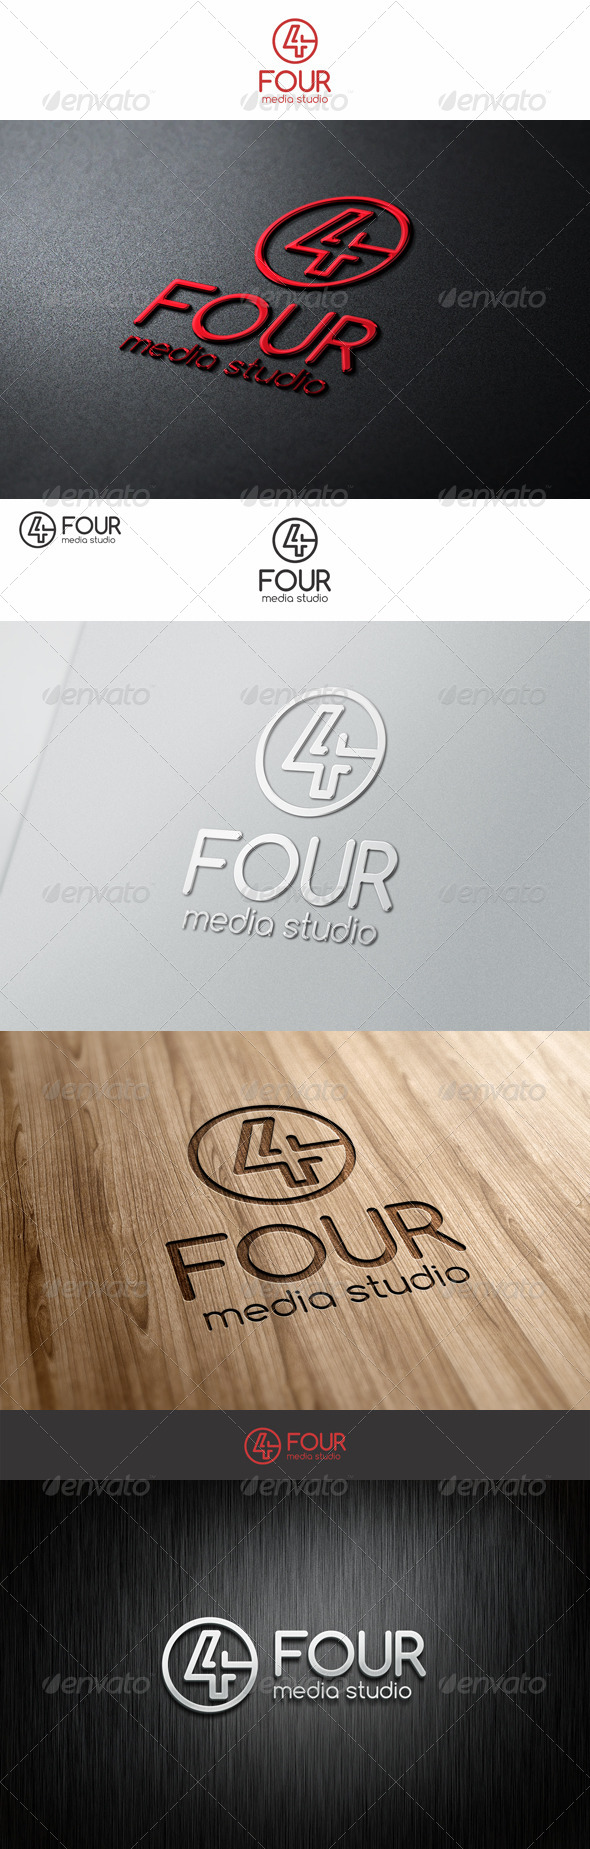 Four Logo Number - Numbers Logo Templates